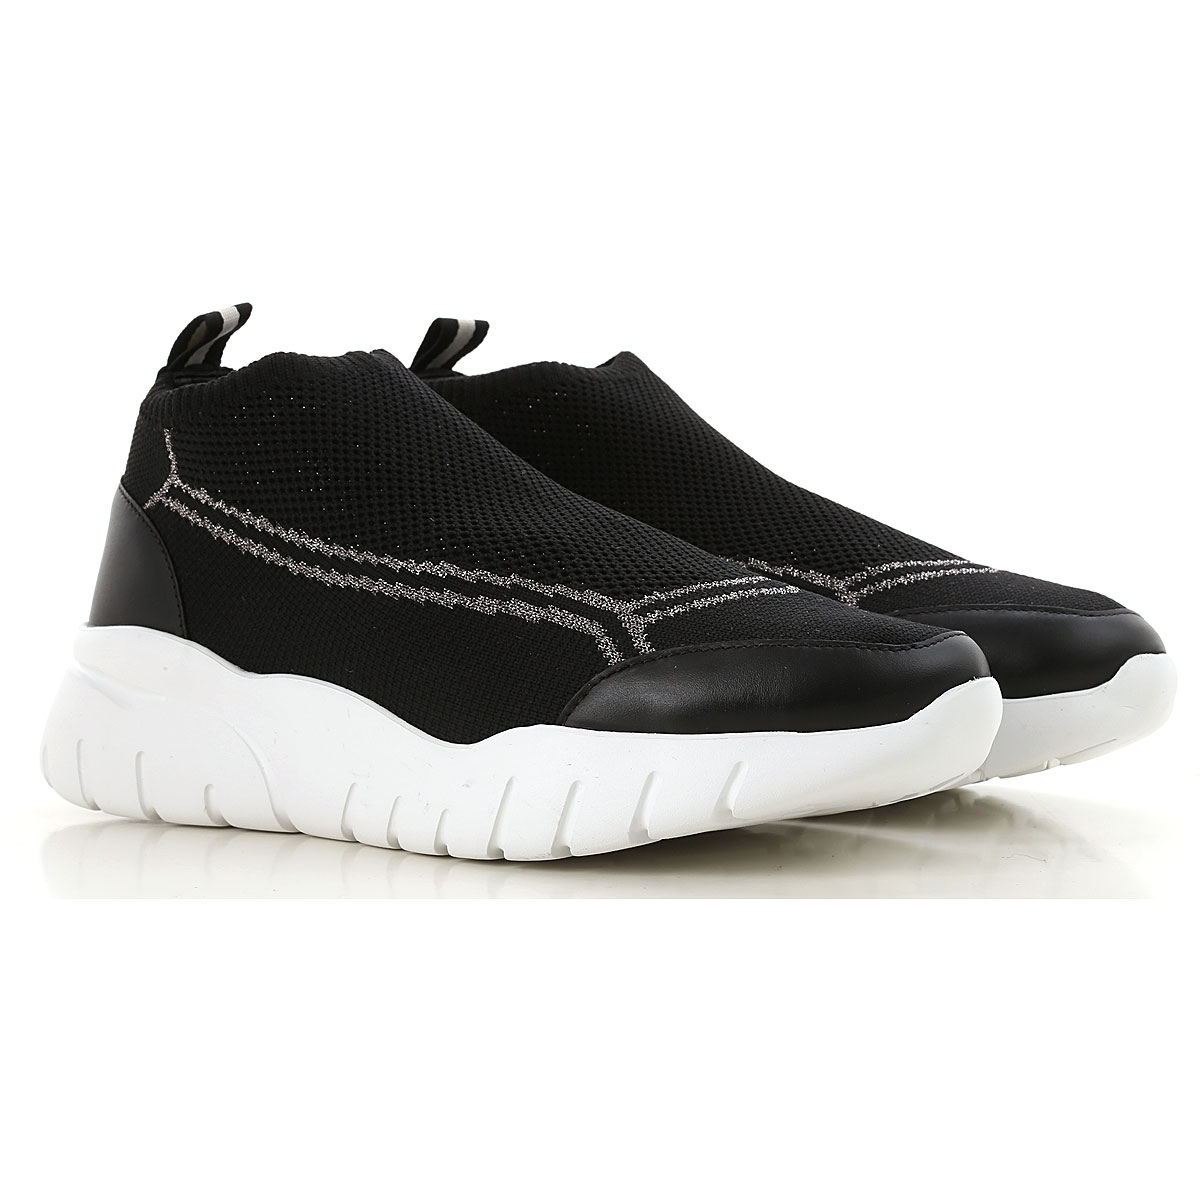 Image of Bally Slip on Sneakers for Women, Black, Knitted, 2017, EUR 36 - UK 3 - USA 5.5 EUR 37 - UK 4 - USA 6.5 EUR 39 - UK 6 - USA 8.5 EUR 40 - UK 7 - USA 9.5